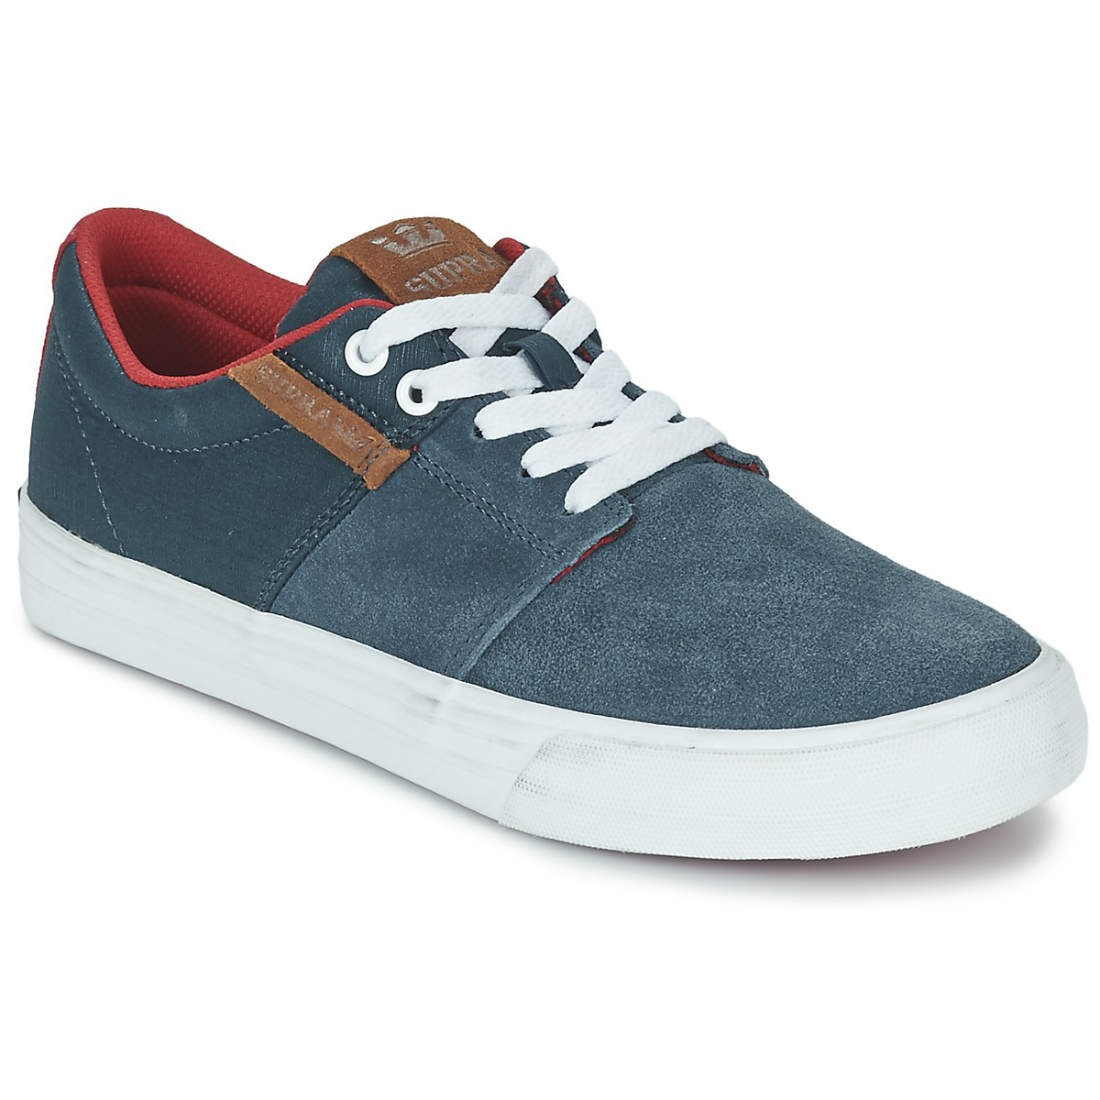 STACKS VULC 2 navy red